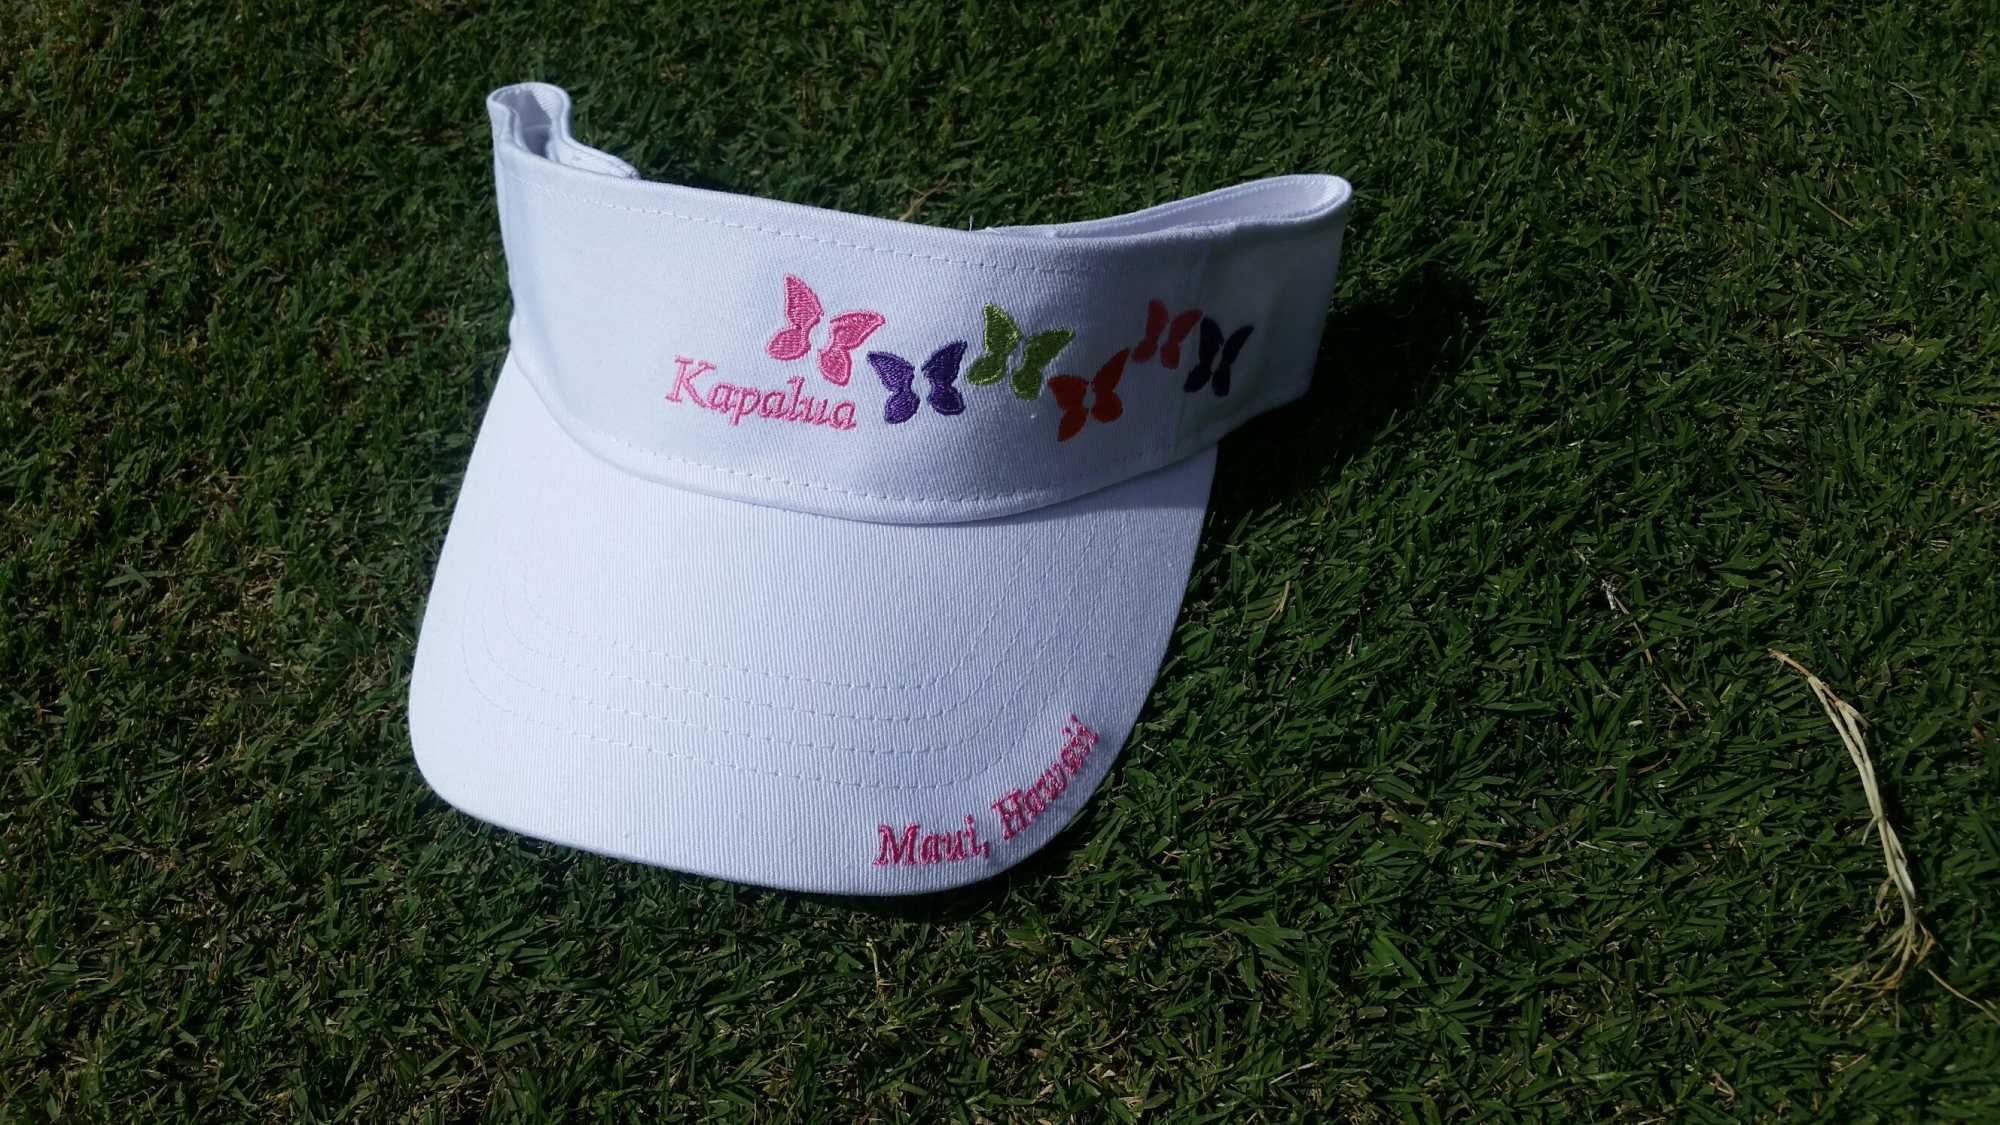 Womens Imperial Kapalua Visor - White with Butterflies